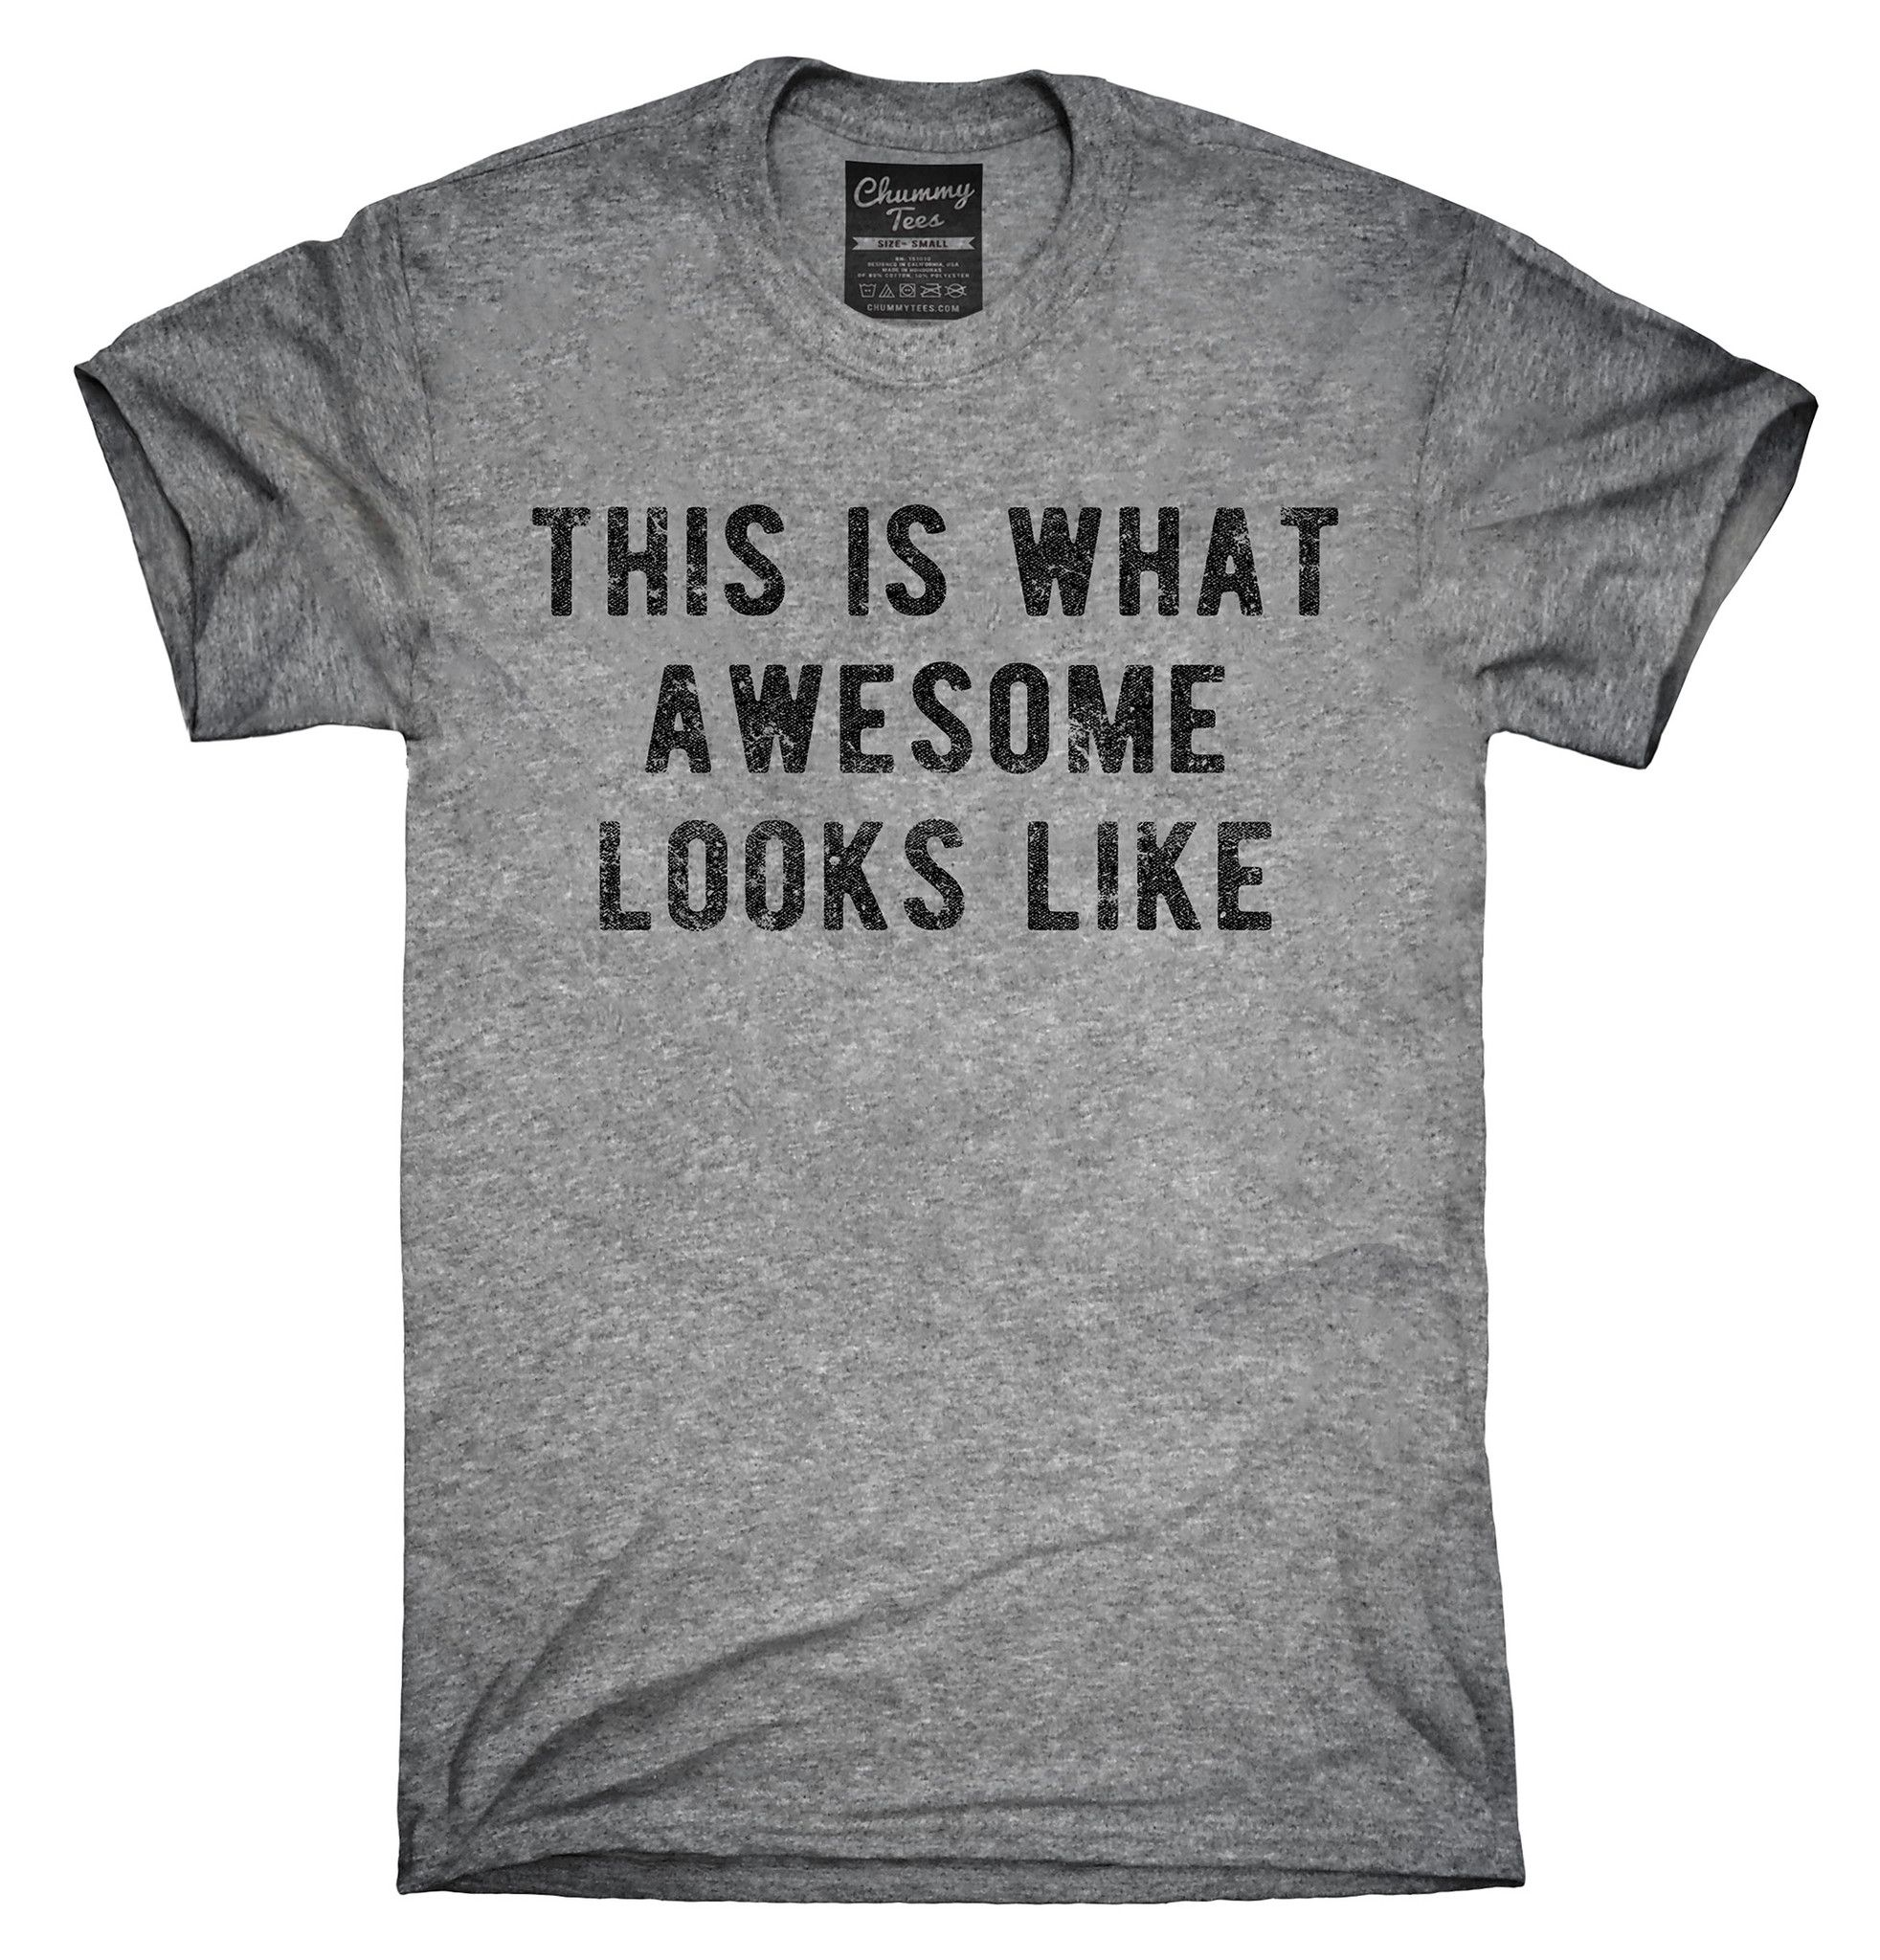 This Is What Awesome Looks Like Shirt, Hoodies, Tanktops